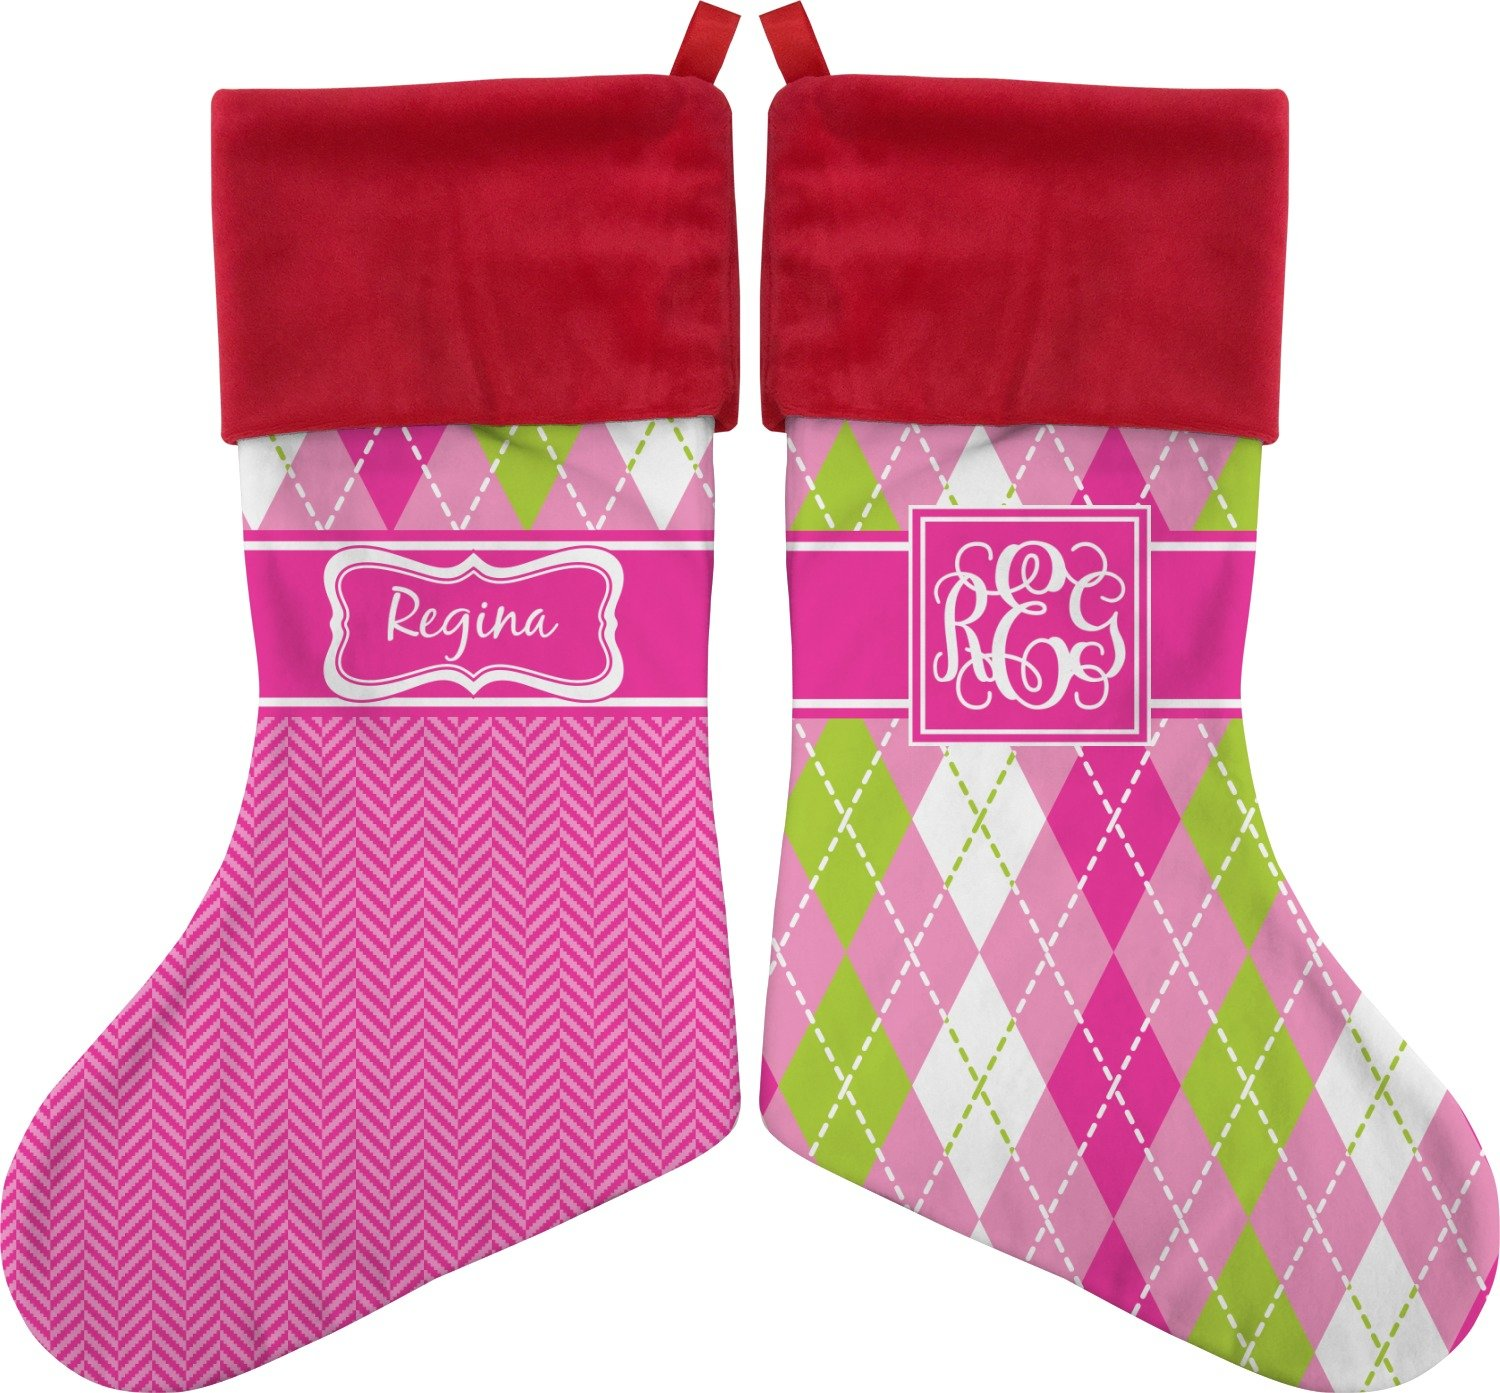 af8455a3a Amazon.com  RNK Shops Pink   Green Argyle Christmas Stocking - Double-Sided  (Personalized)  Home   Kitchen